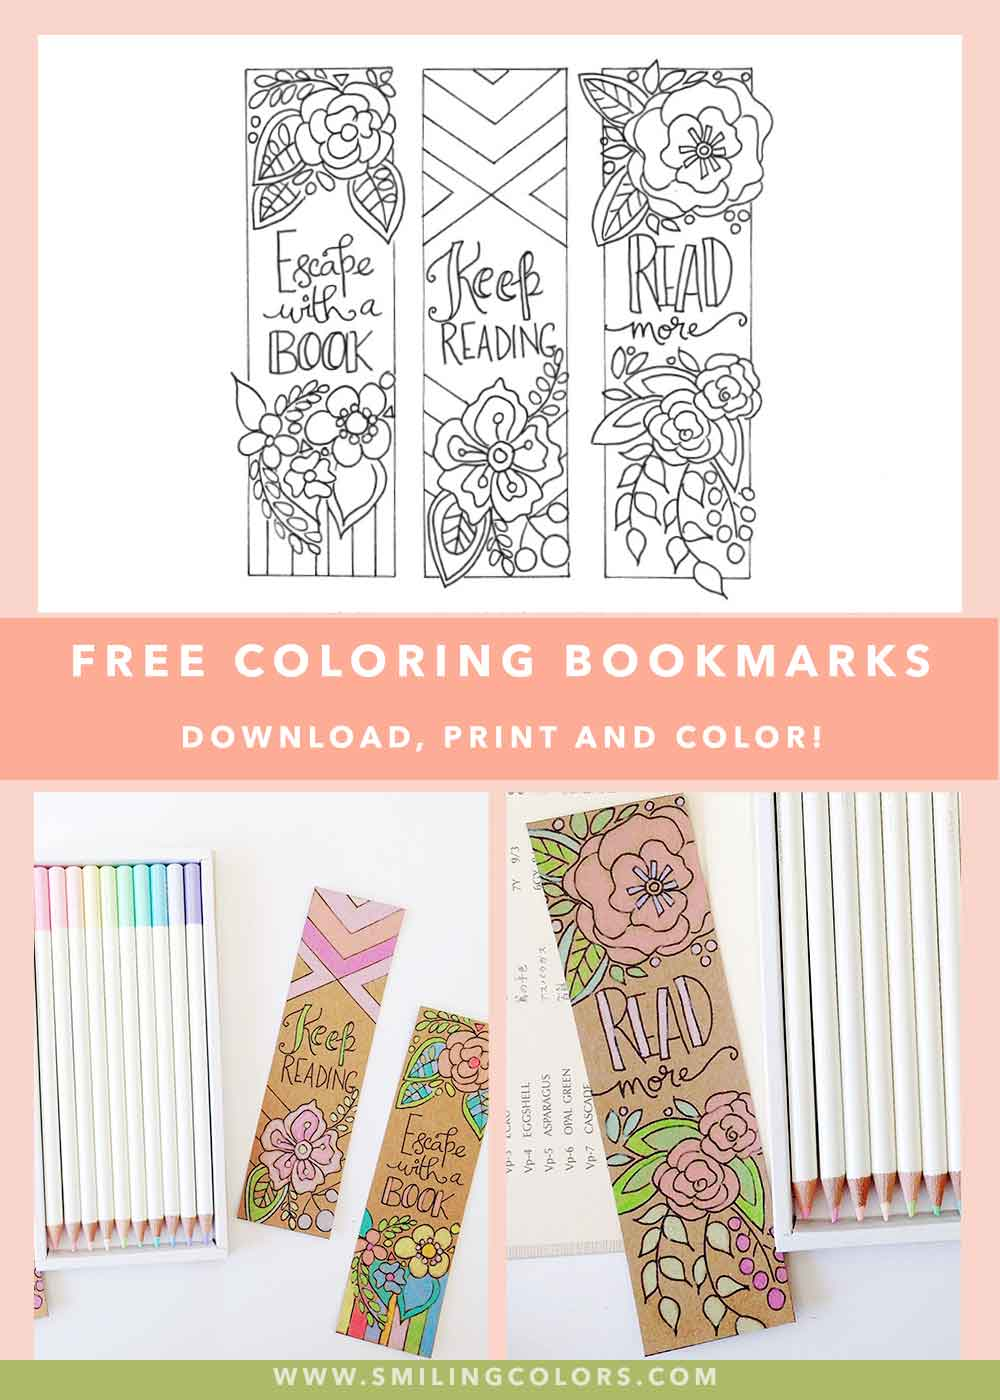 It is an image of Free Printable Bookmarks to Color with vintage